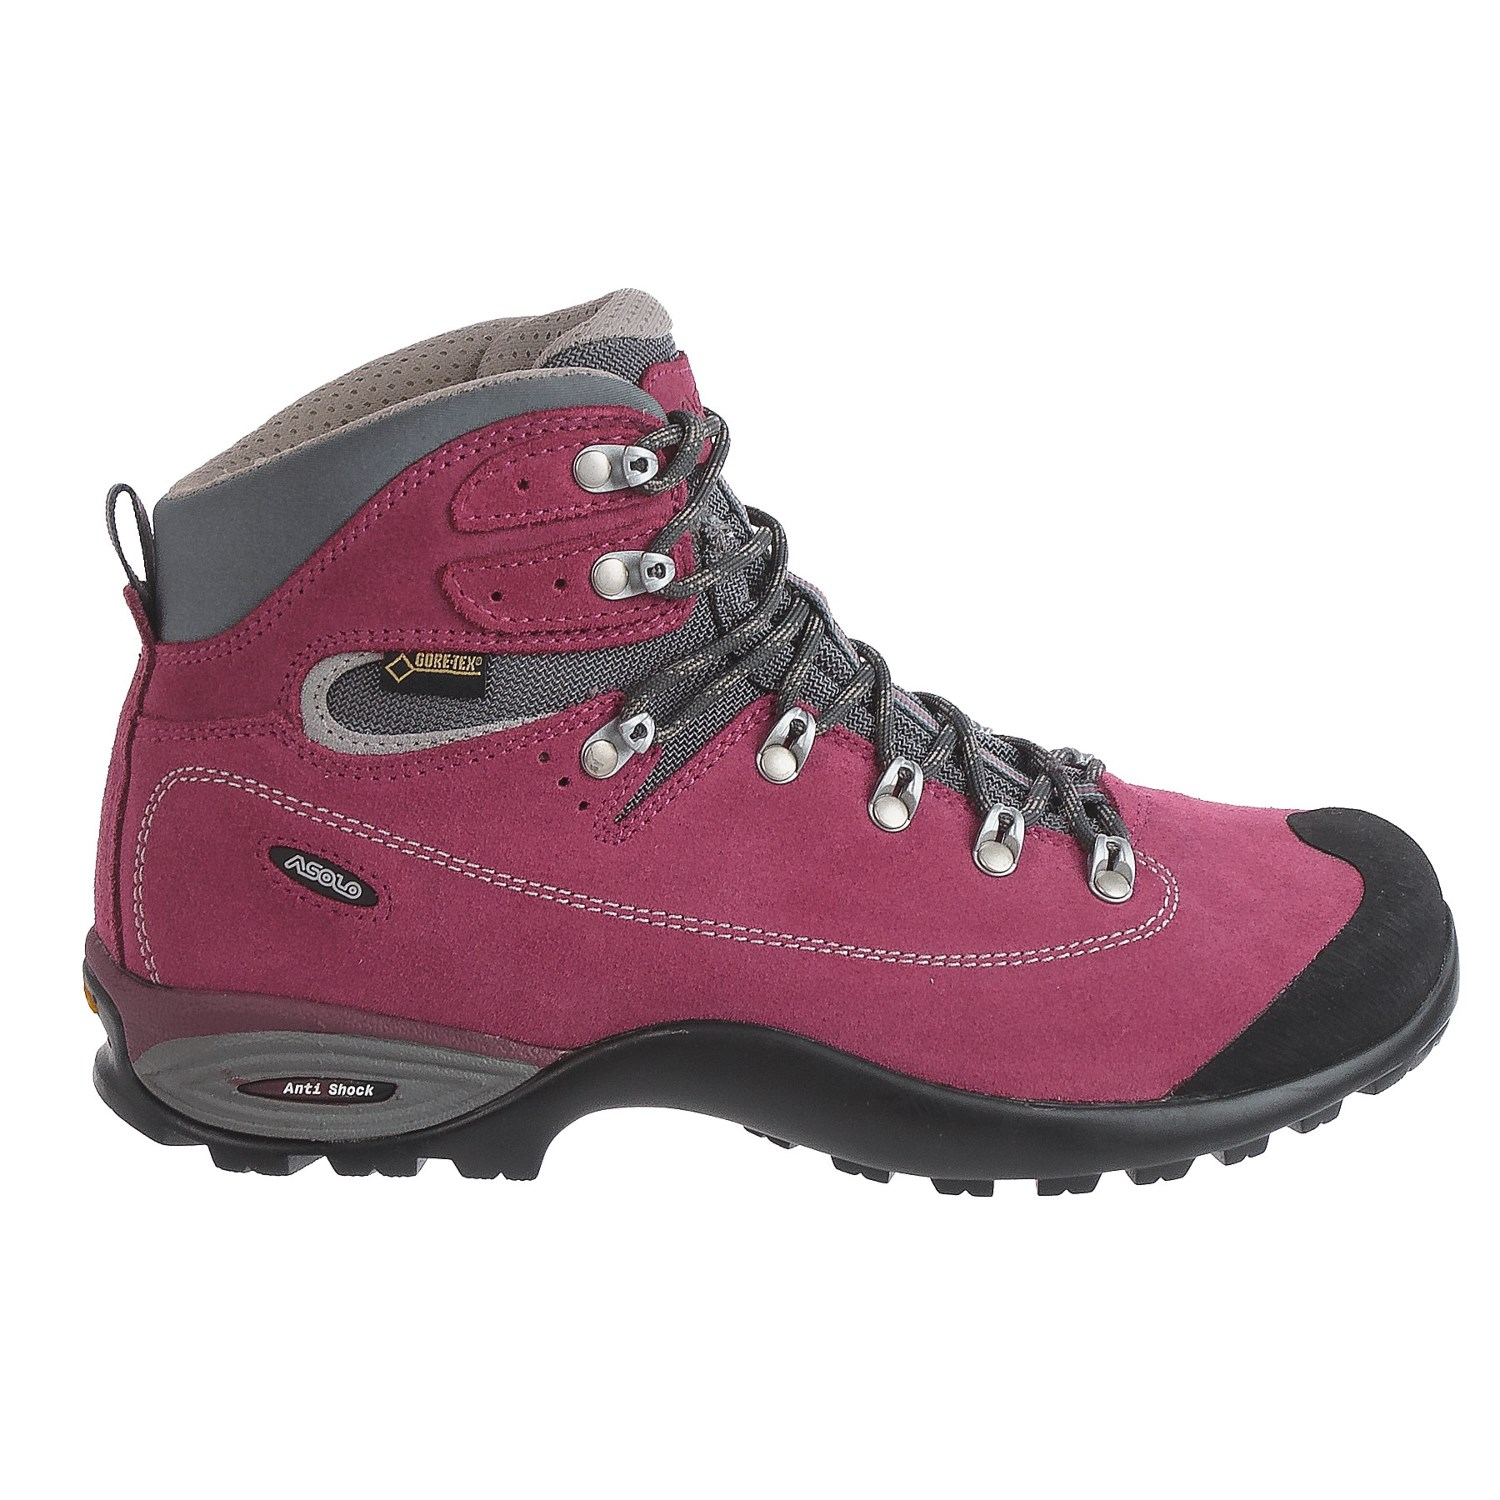 e87422456c7 asolo-tacoma-gv-gore-tex -hiking-boots-waterproof-for-women~a~9949w_4~1500.1.jpg